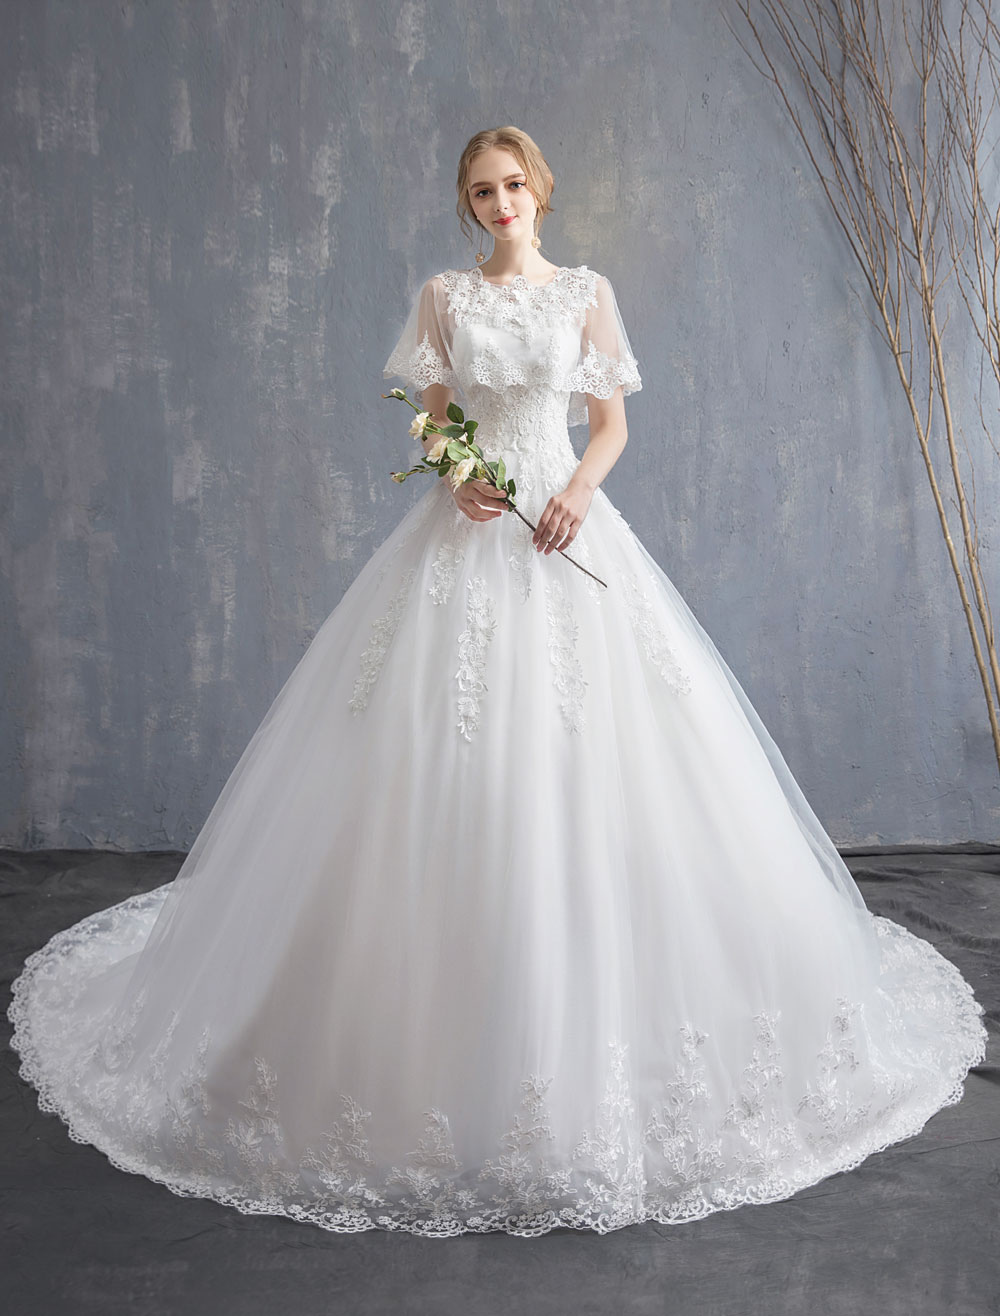 Princess Wedding Dresses Ball Gown Lace Beaded Tulle Long Train